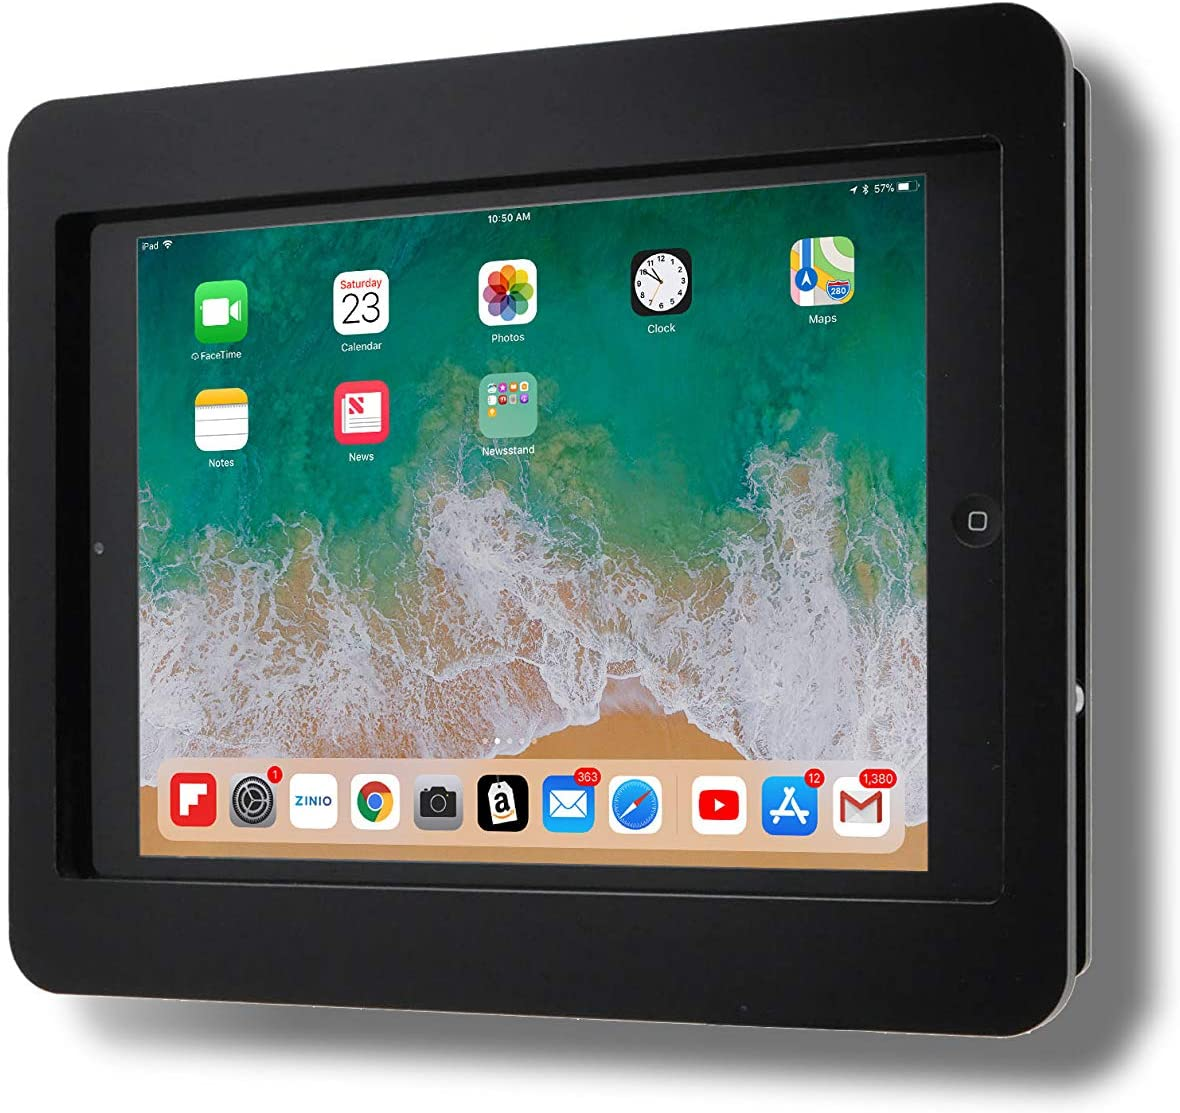 "TABcare Anti-Theft Acrylic VESA Enclosure for Apple iPad Air 9.7"" 1st & 2nd gen. with Free Wall Mount Kit & 90-Degree Angle Charge Cable (iPad Air 1/2 9.7"", Black)"